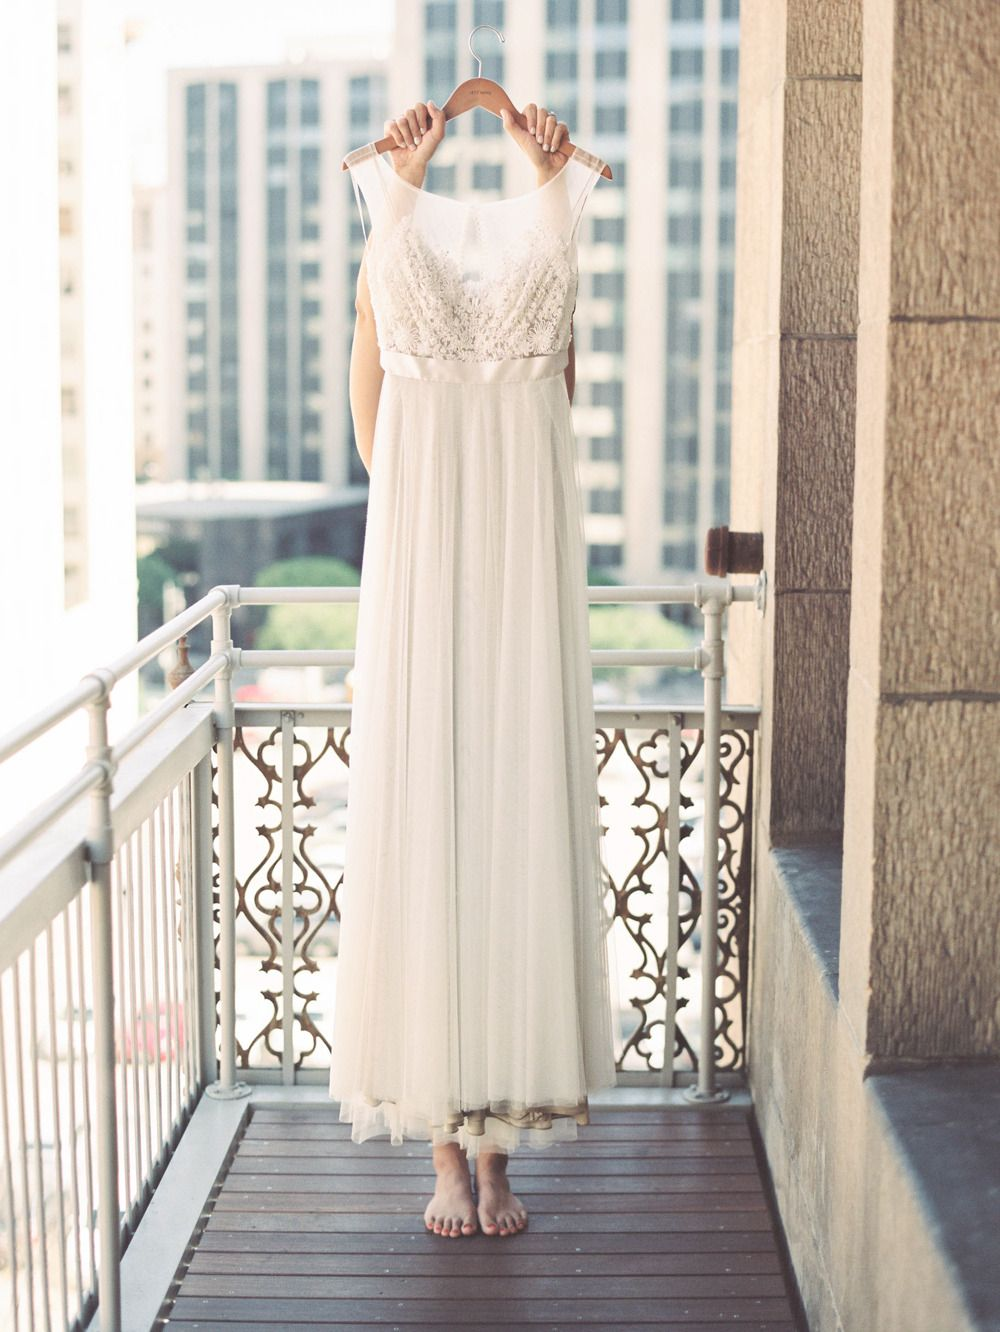 Bridal Dress By Watters Brides Photo Courtesy Of Style Me Pretty